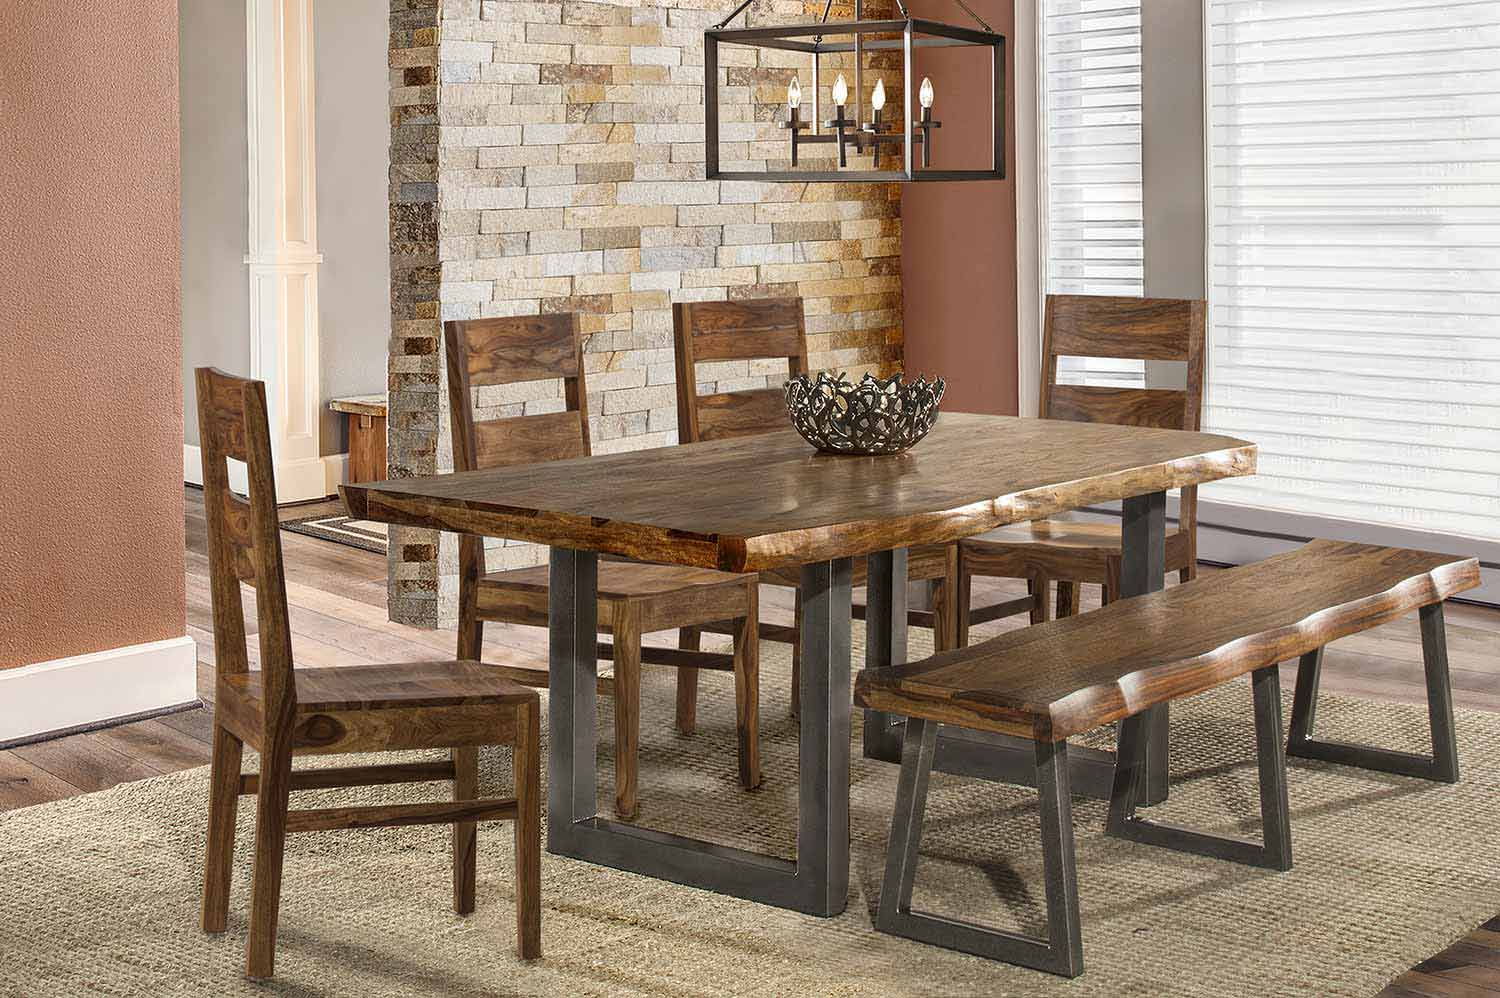 Hillsdale Emerson 6 Piece Rectangle Dining Set With Bench   Natural Sheesham